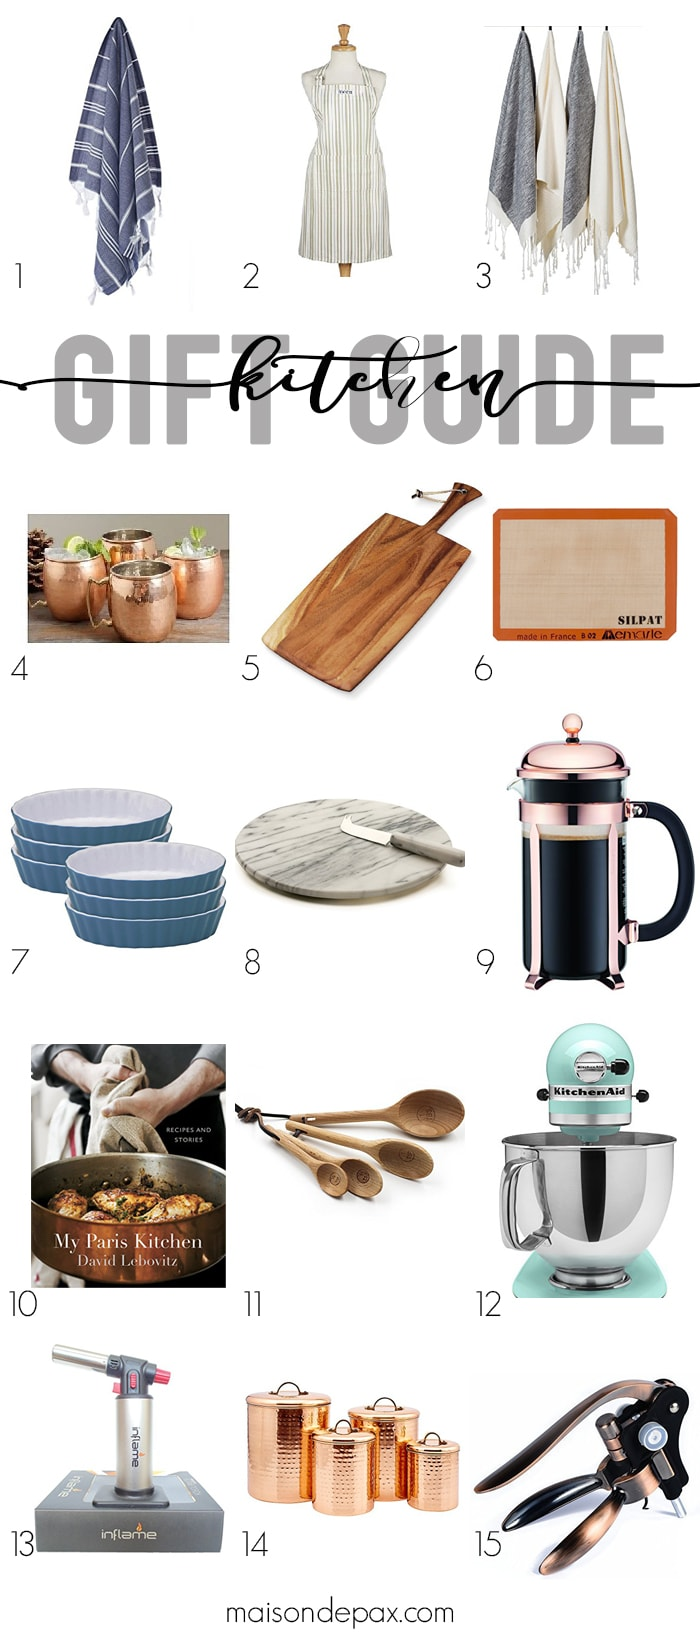 The Best Kitchen Gift Guide - Maison de Pax